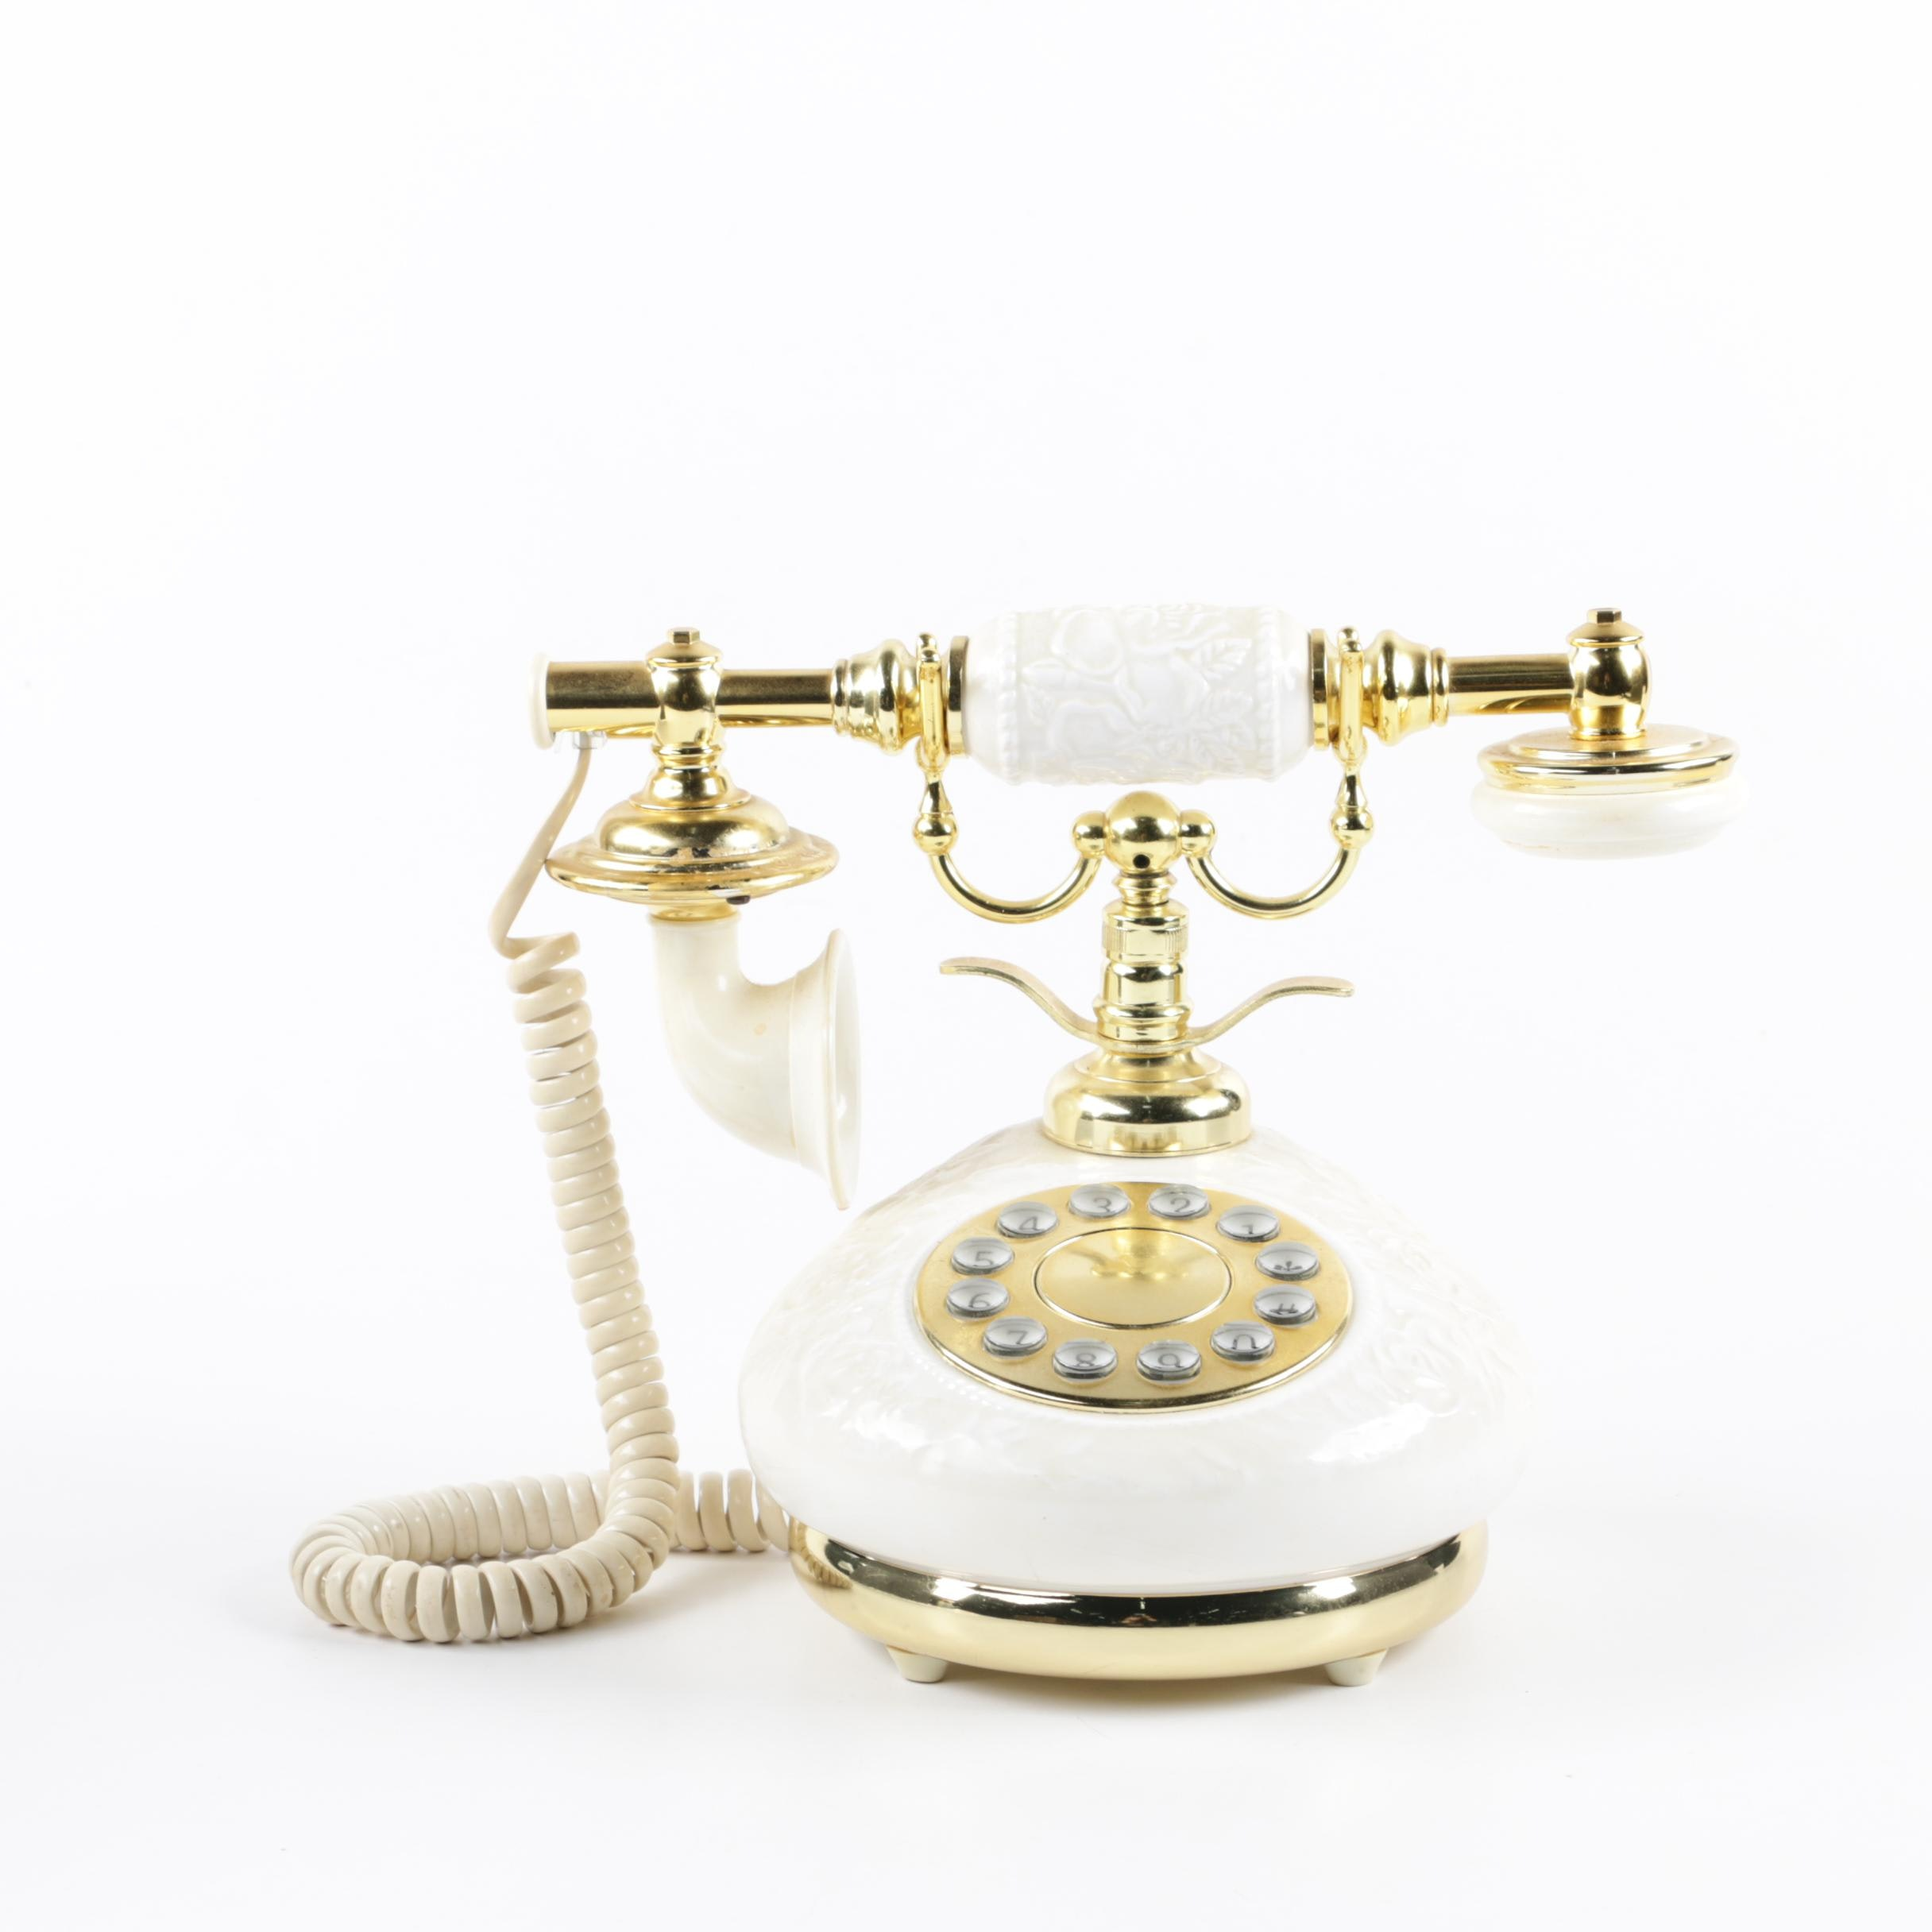 Polyconcept USA Vintage Rotary Style Push Button Telephone